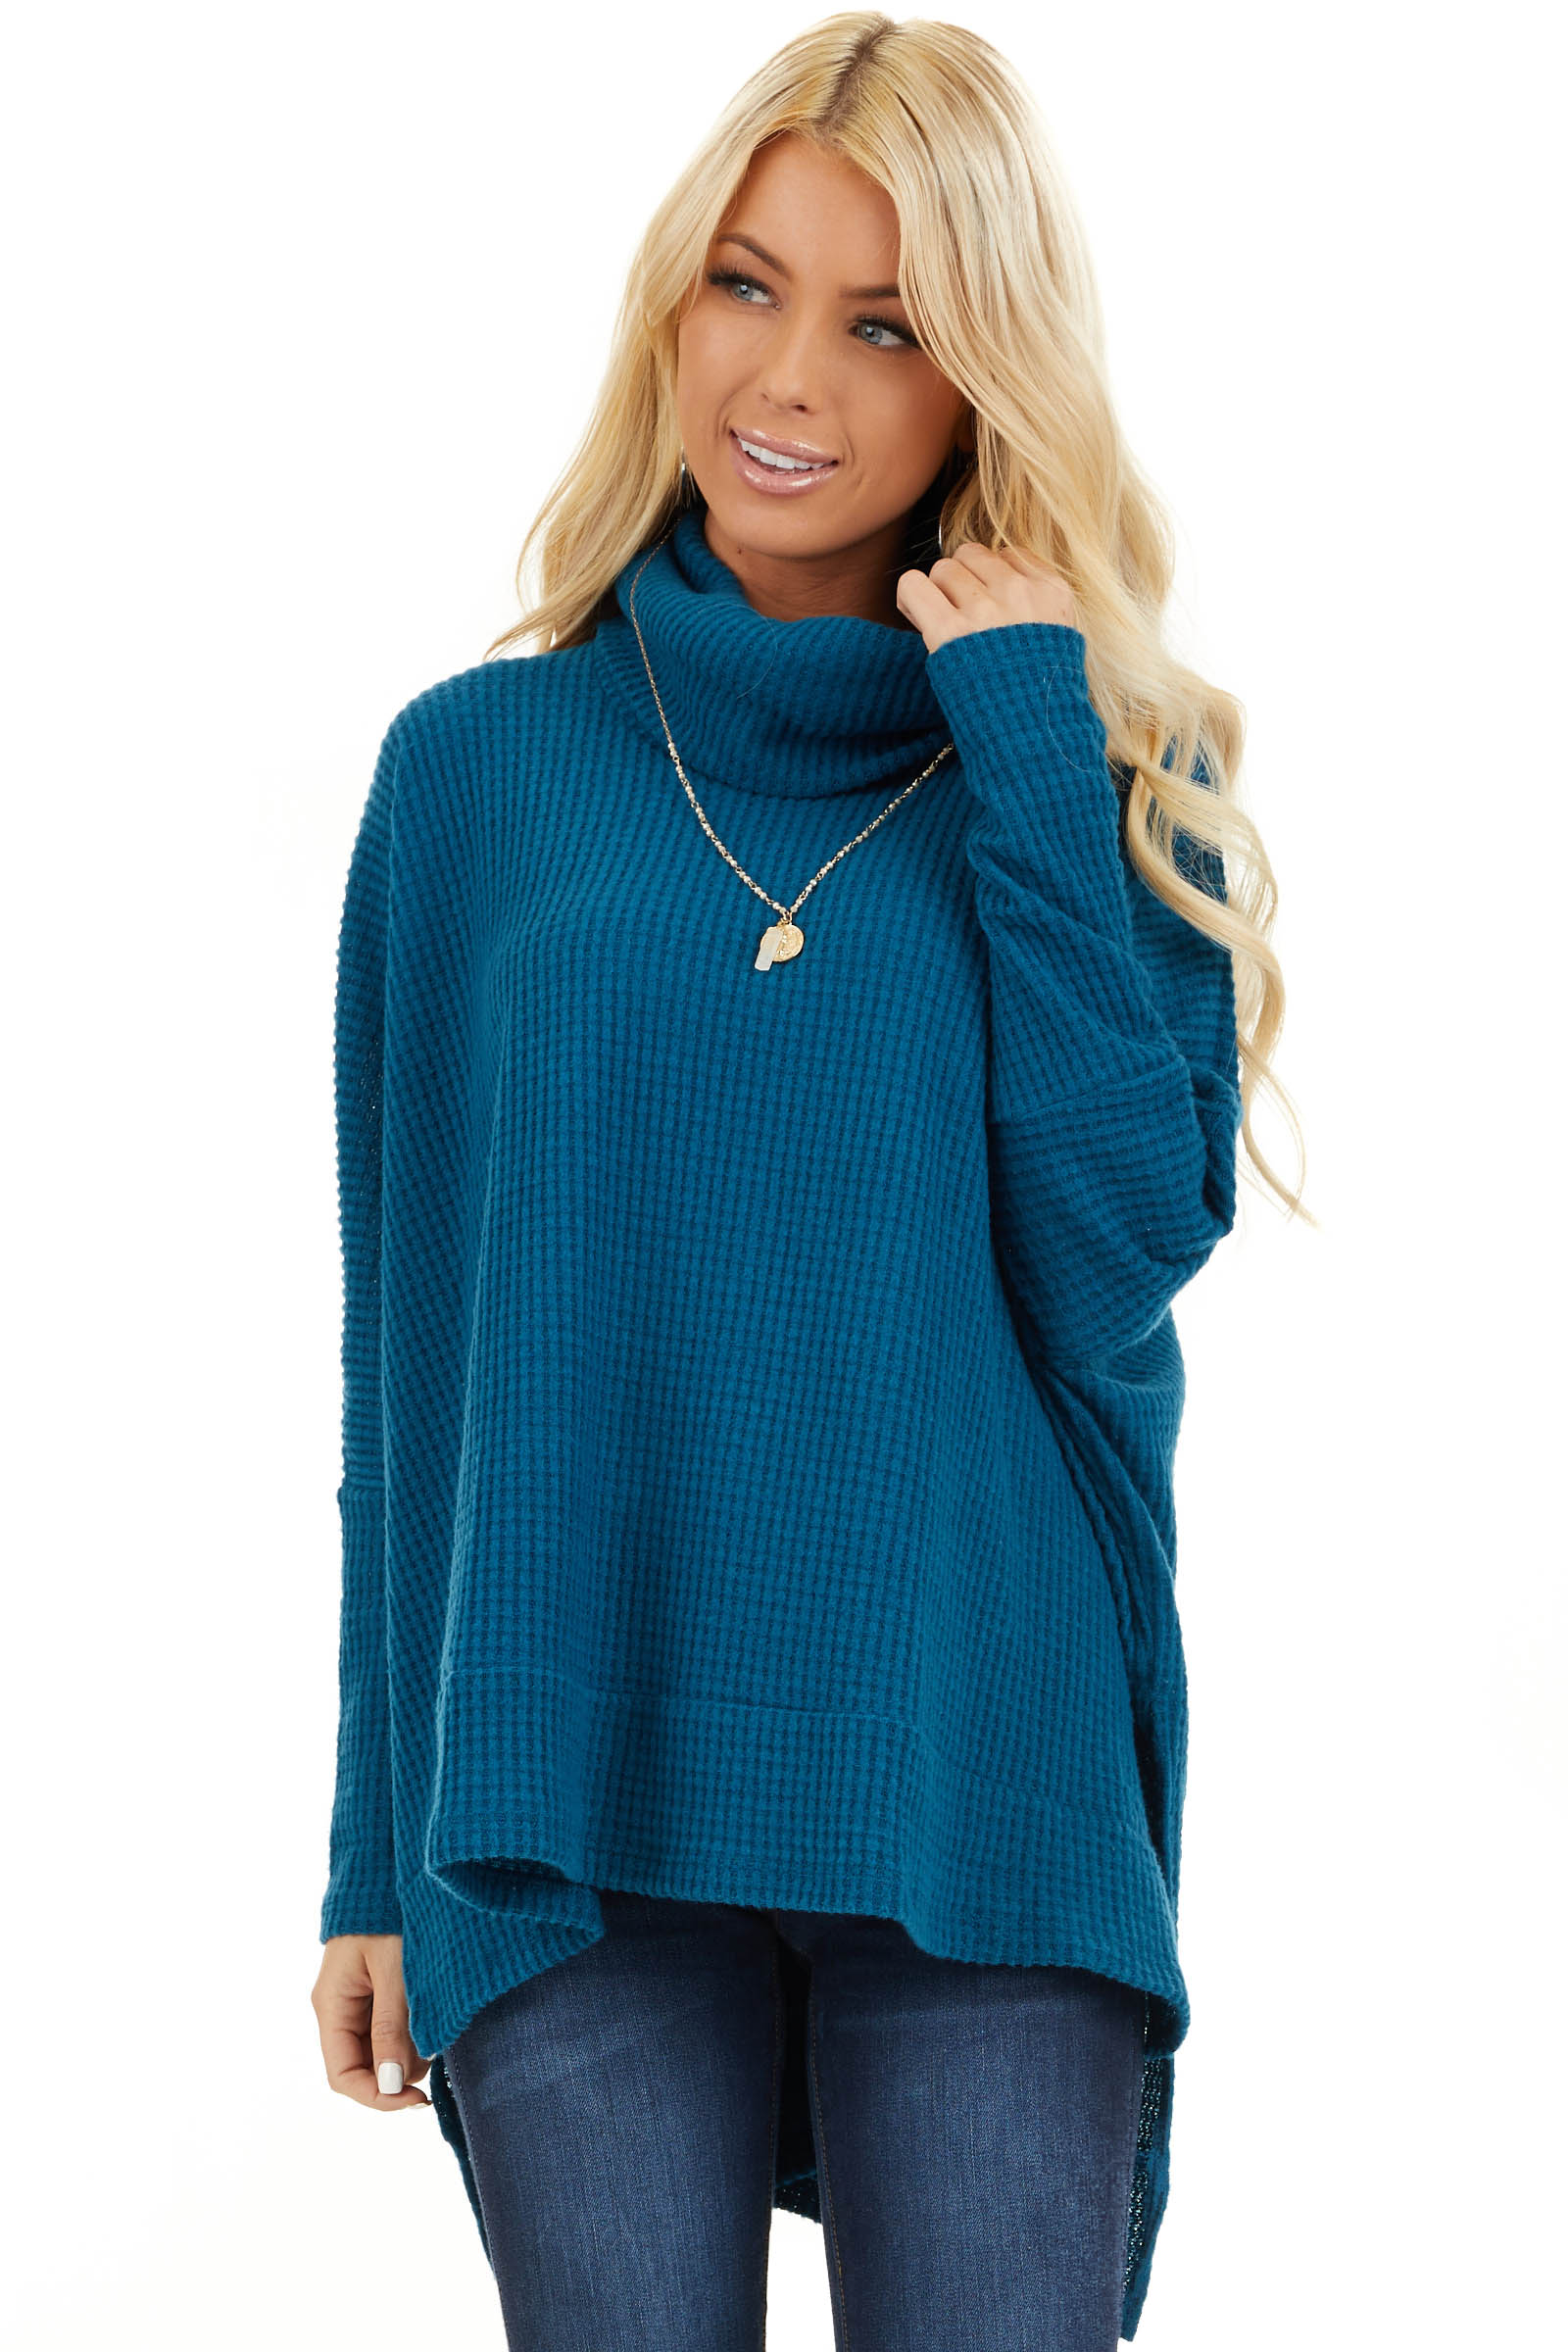 Dark Teal Waffle Knit Top with Cowl Neckline front close up